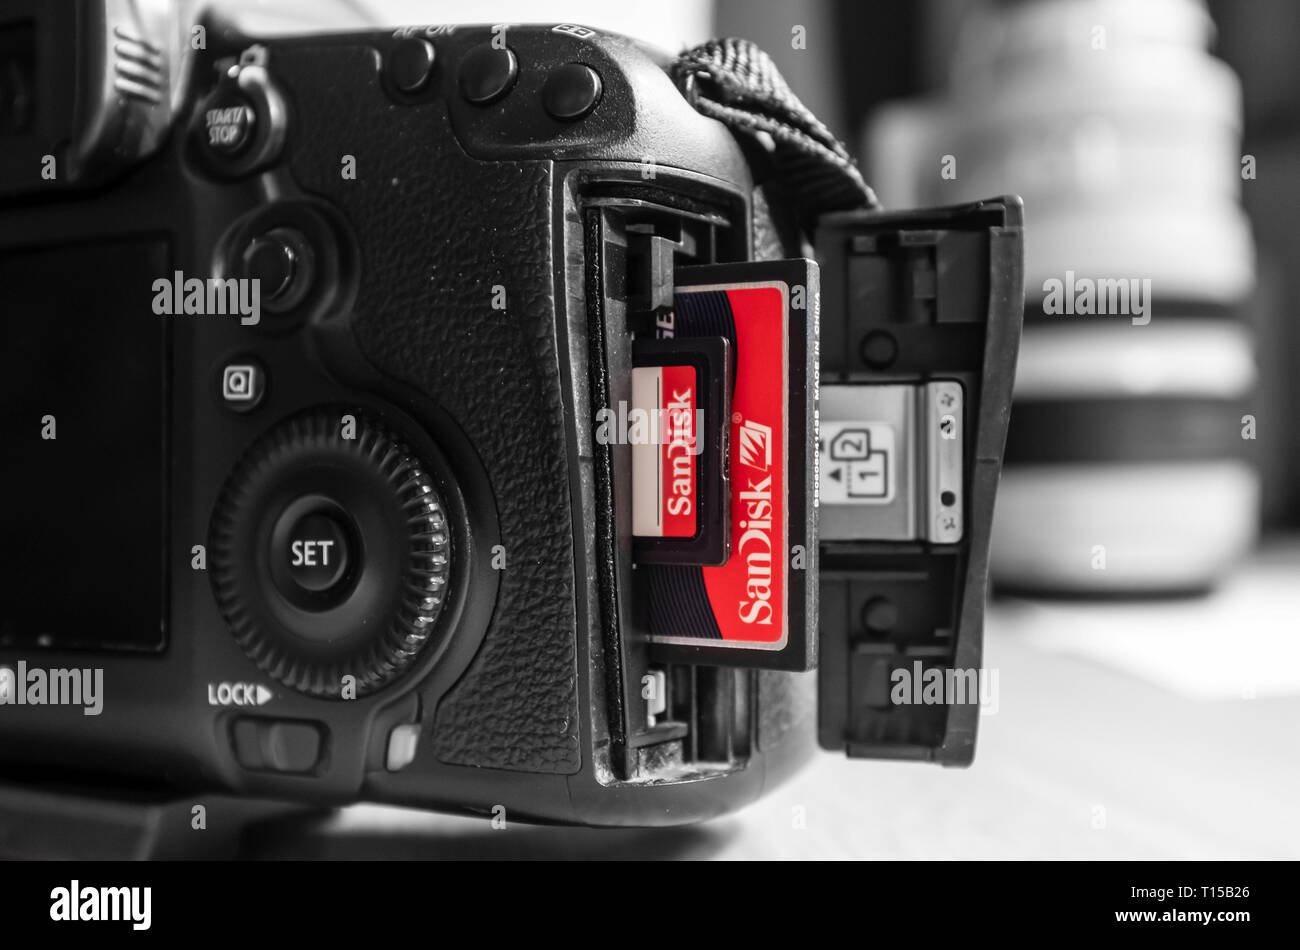 UK - February 08, 2019. Sandisk SD and Compact Flash CF memory cards in a Canon camera slot. Sandisk is the leading brand of memory cards - Stock Image